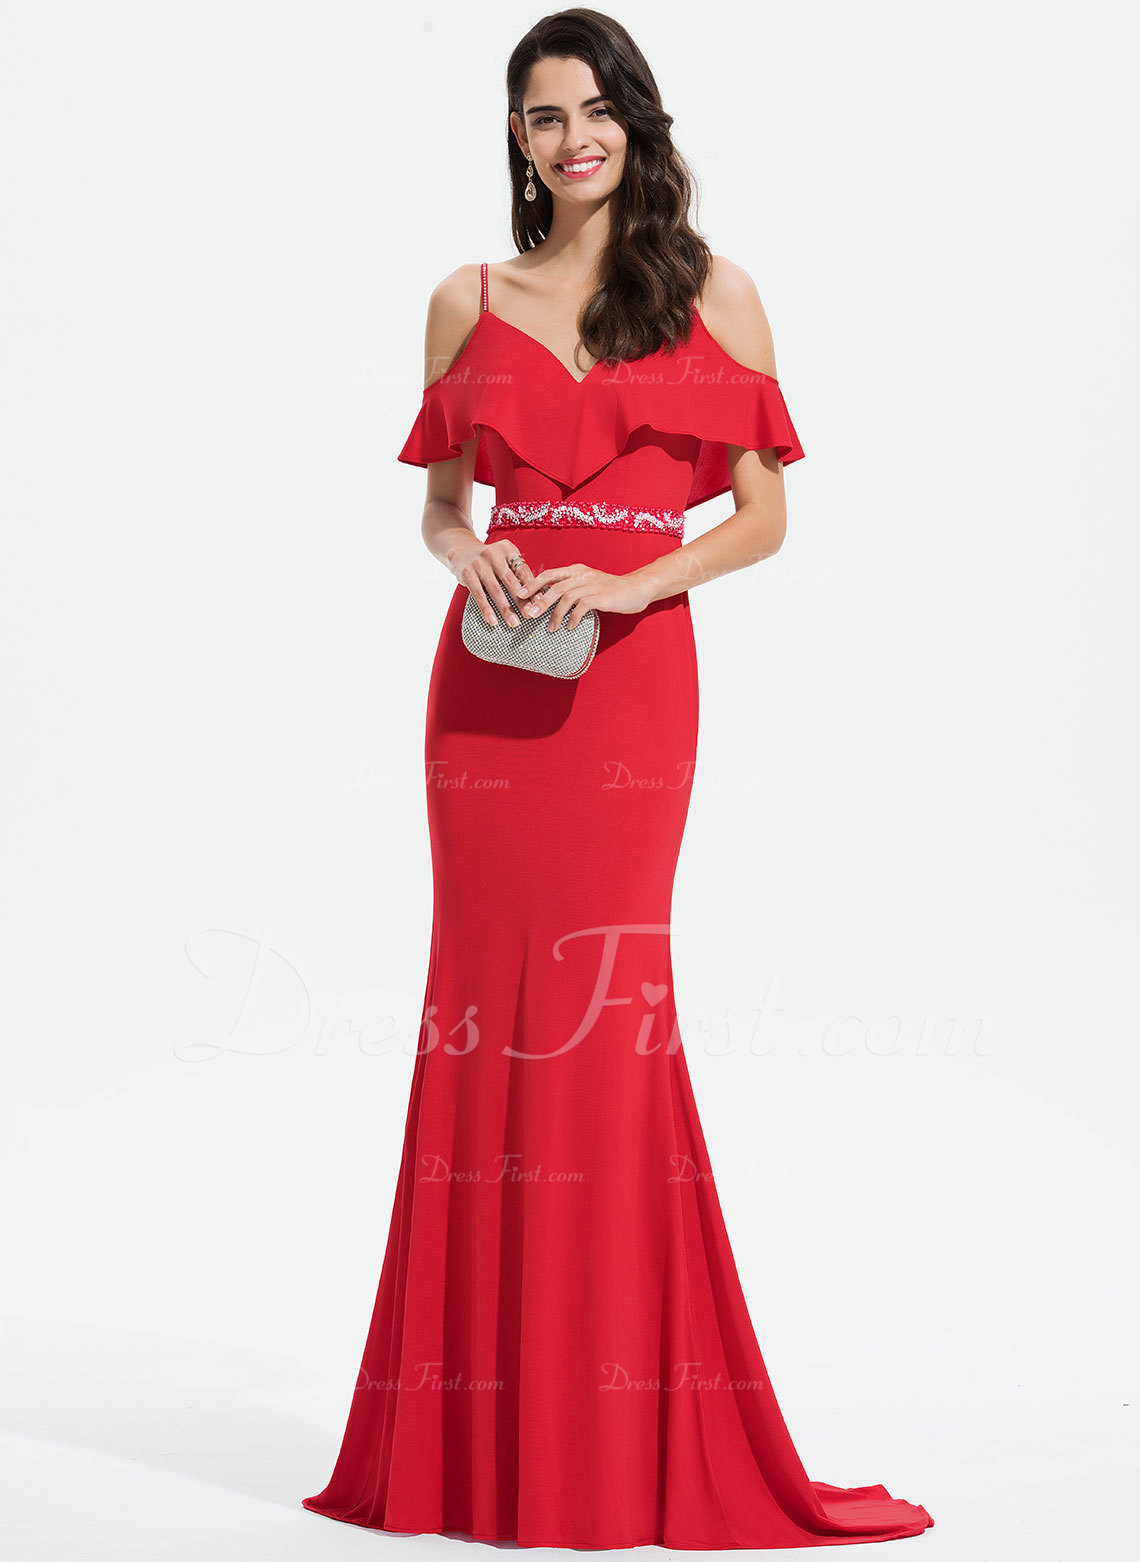 793197805c6f5 Loading zoom. Loading. Color: Red. Trumpet/Mermaid V-neck Sweep Train  Jersey Prom Dresses With Lace Beading Sequins ...